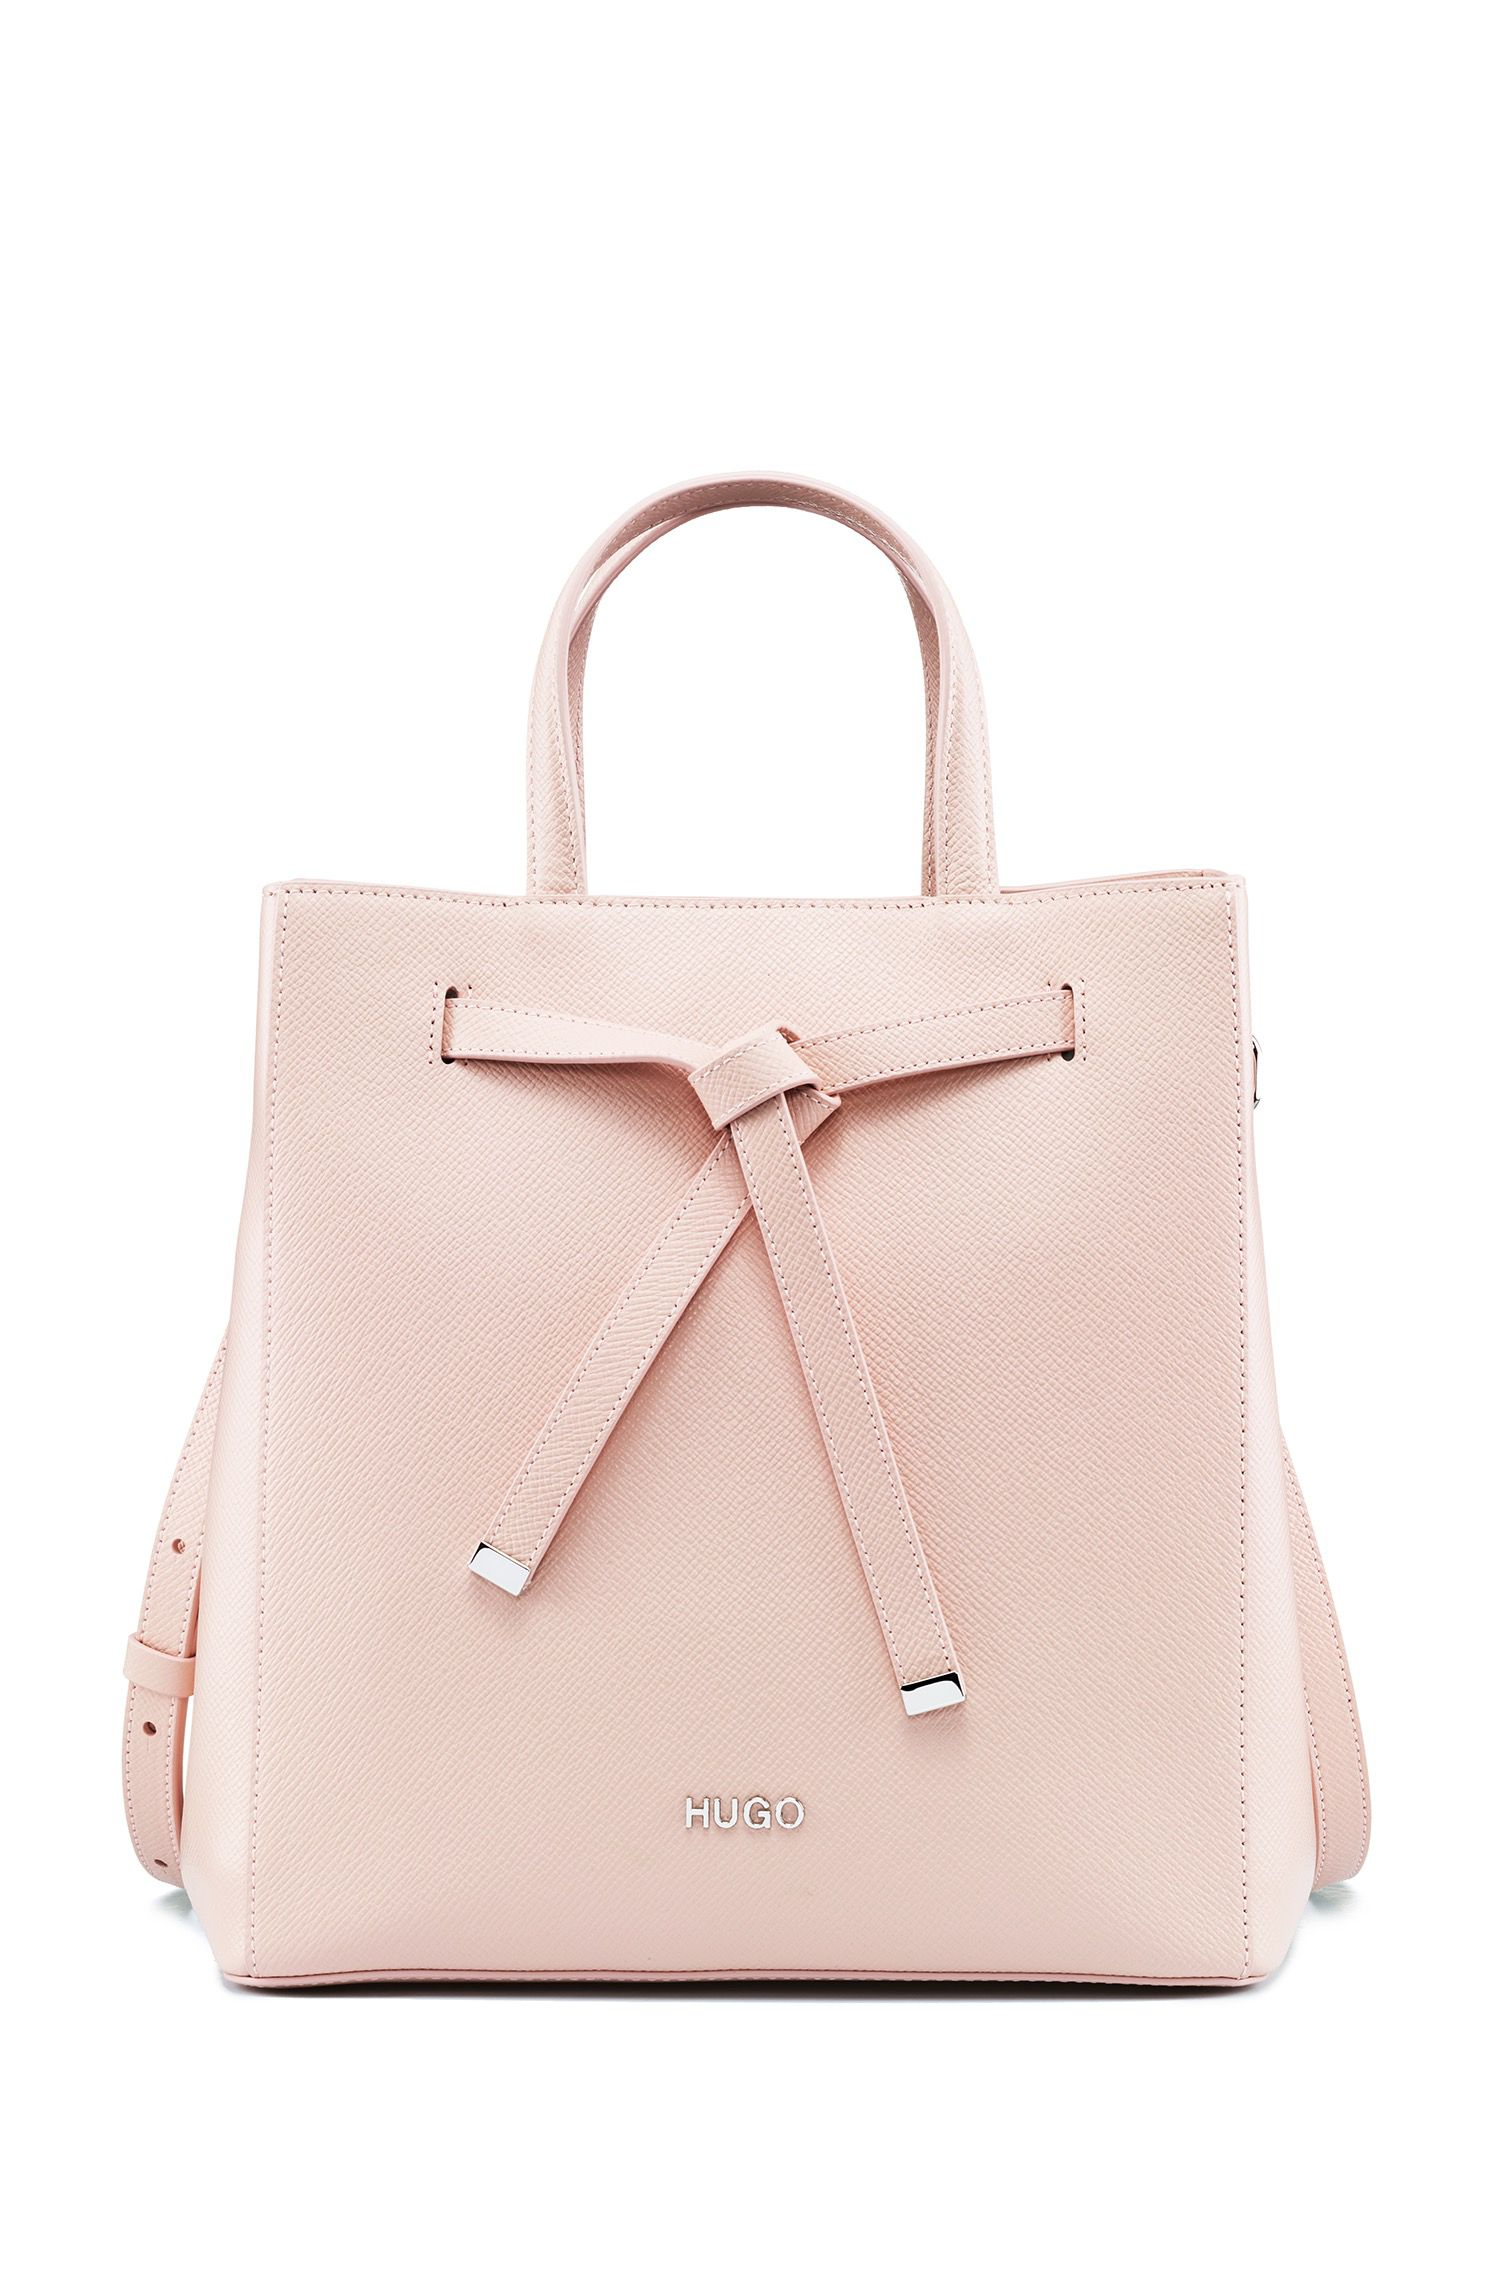 Bucket bag in Saffiano leather with drawstring detail, Pink